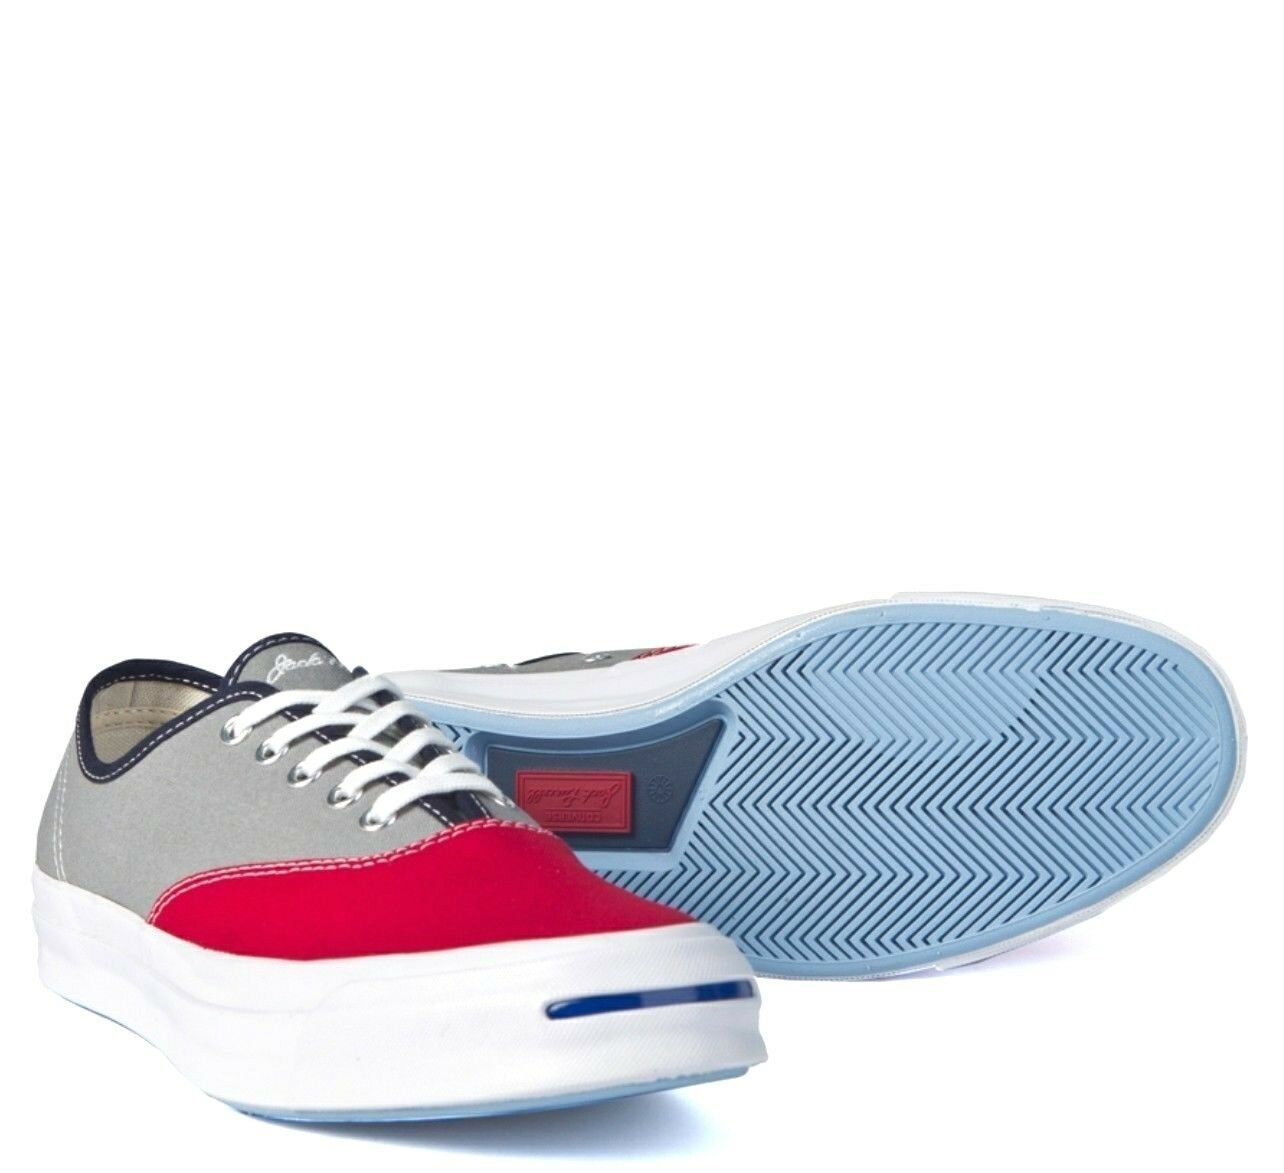 Converse Jack Purcell  Low Crimson/Dolphin 151456C Retail 95.00